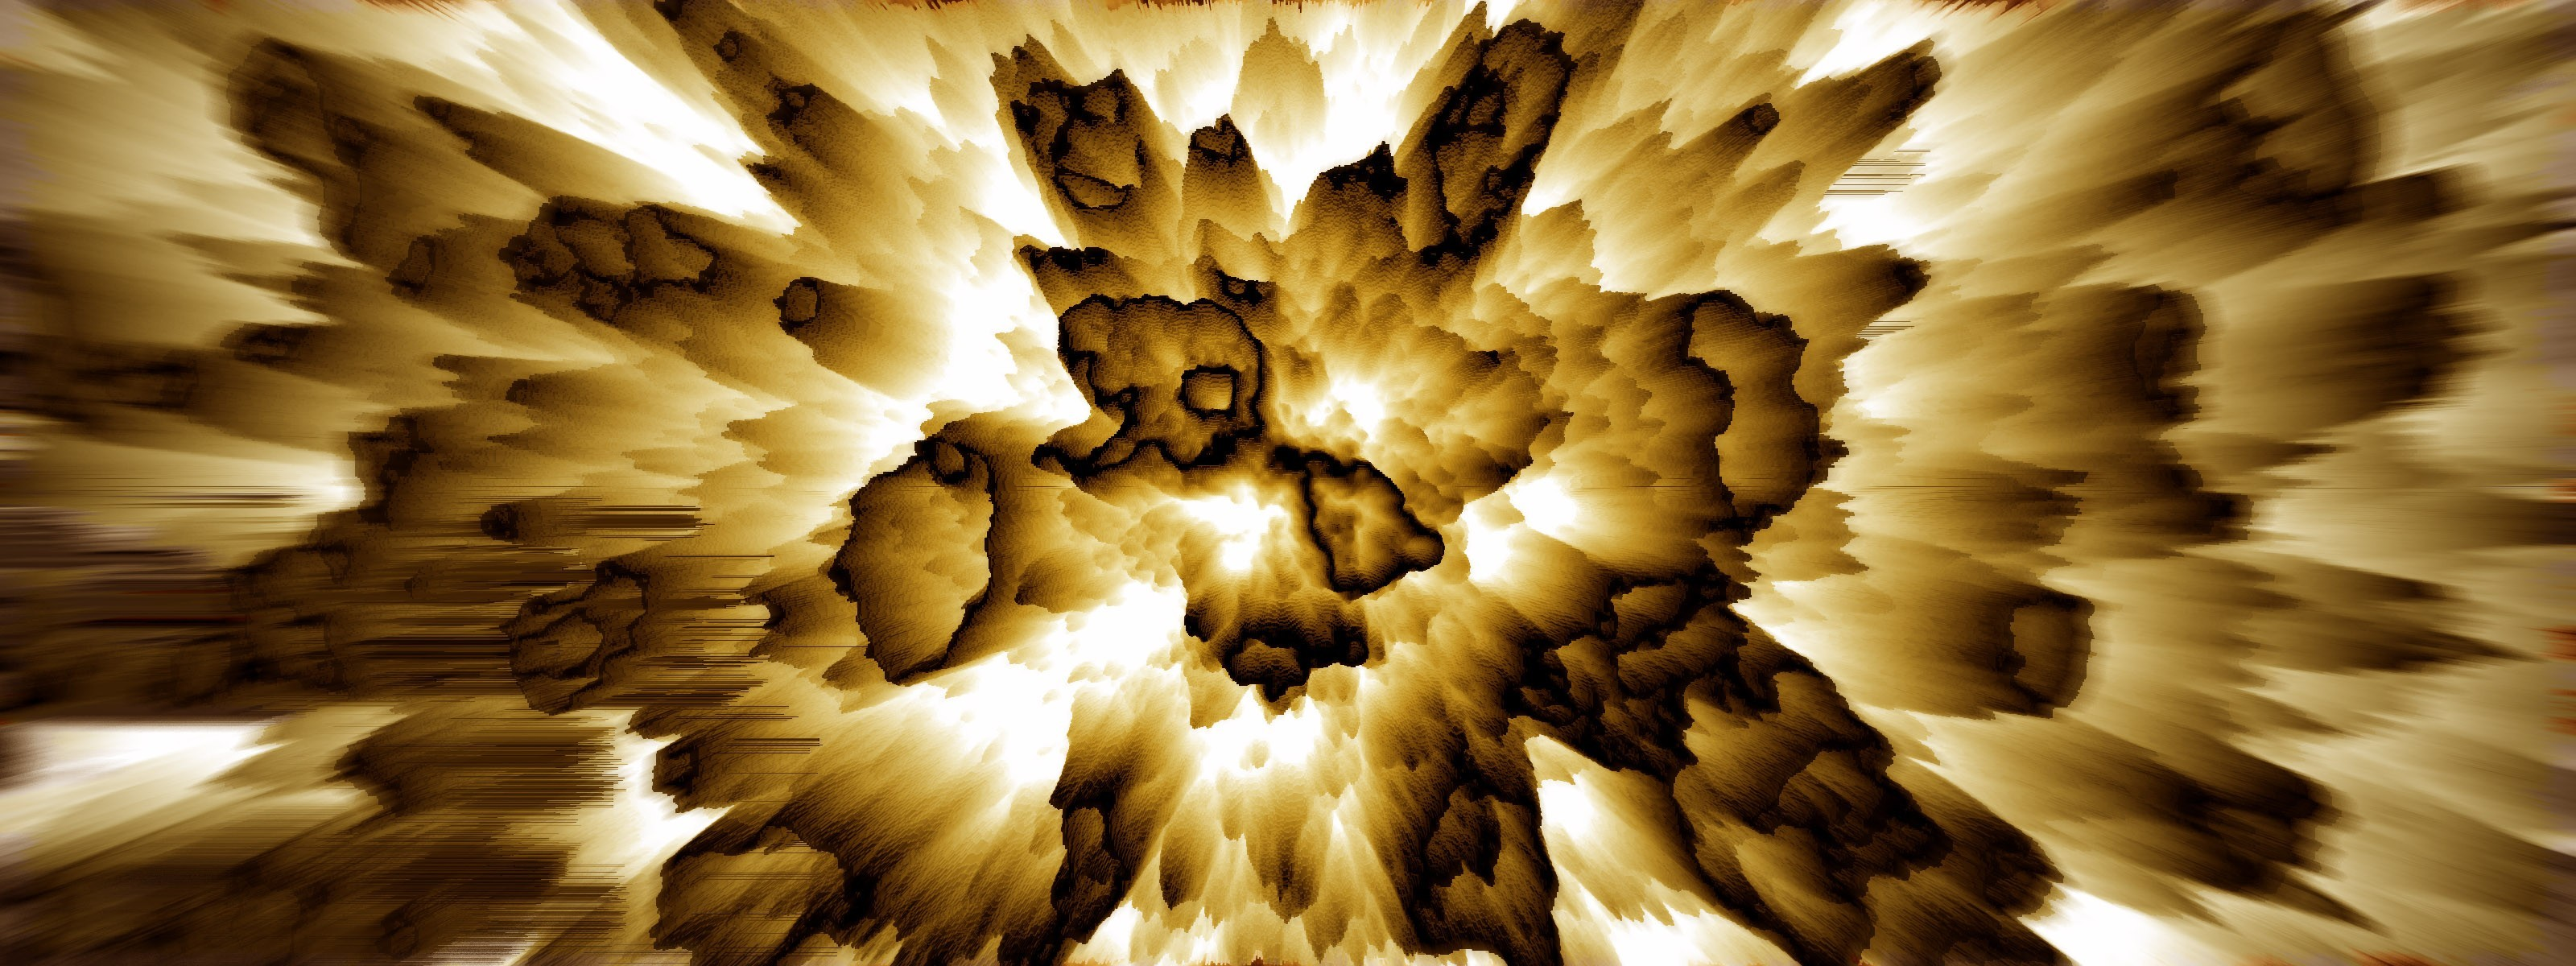 explosion Photo manipulation HD Wallpaper